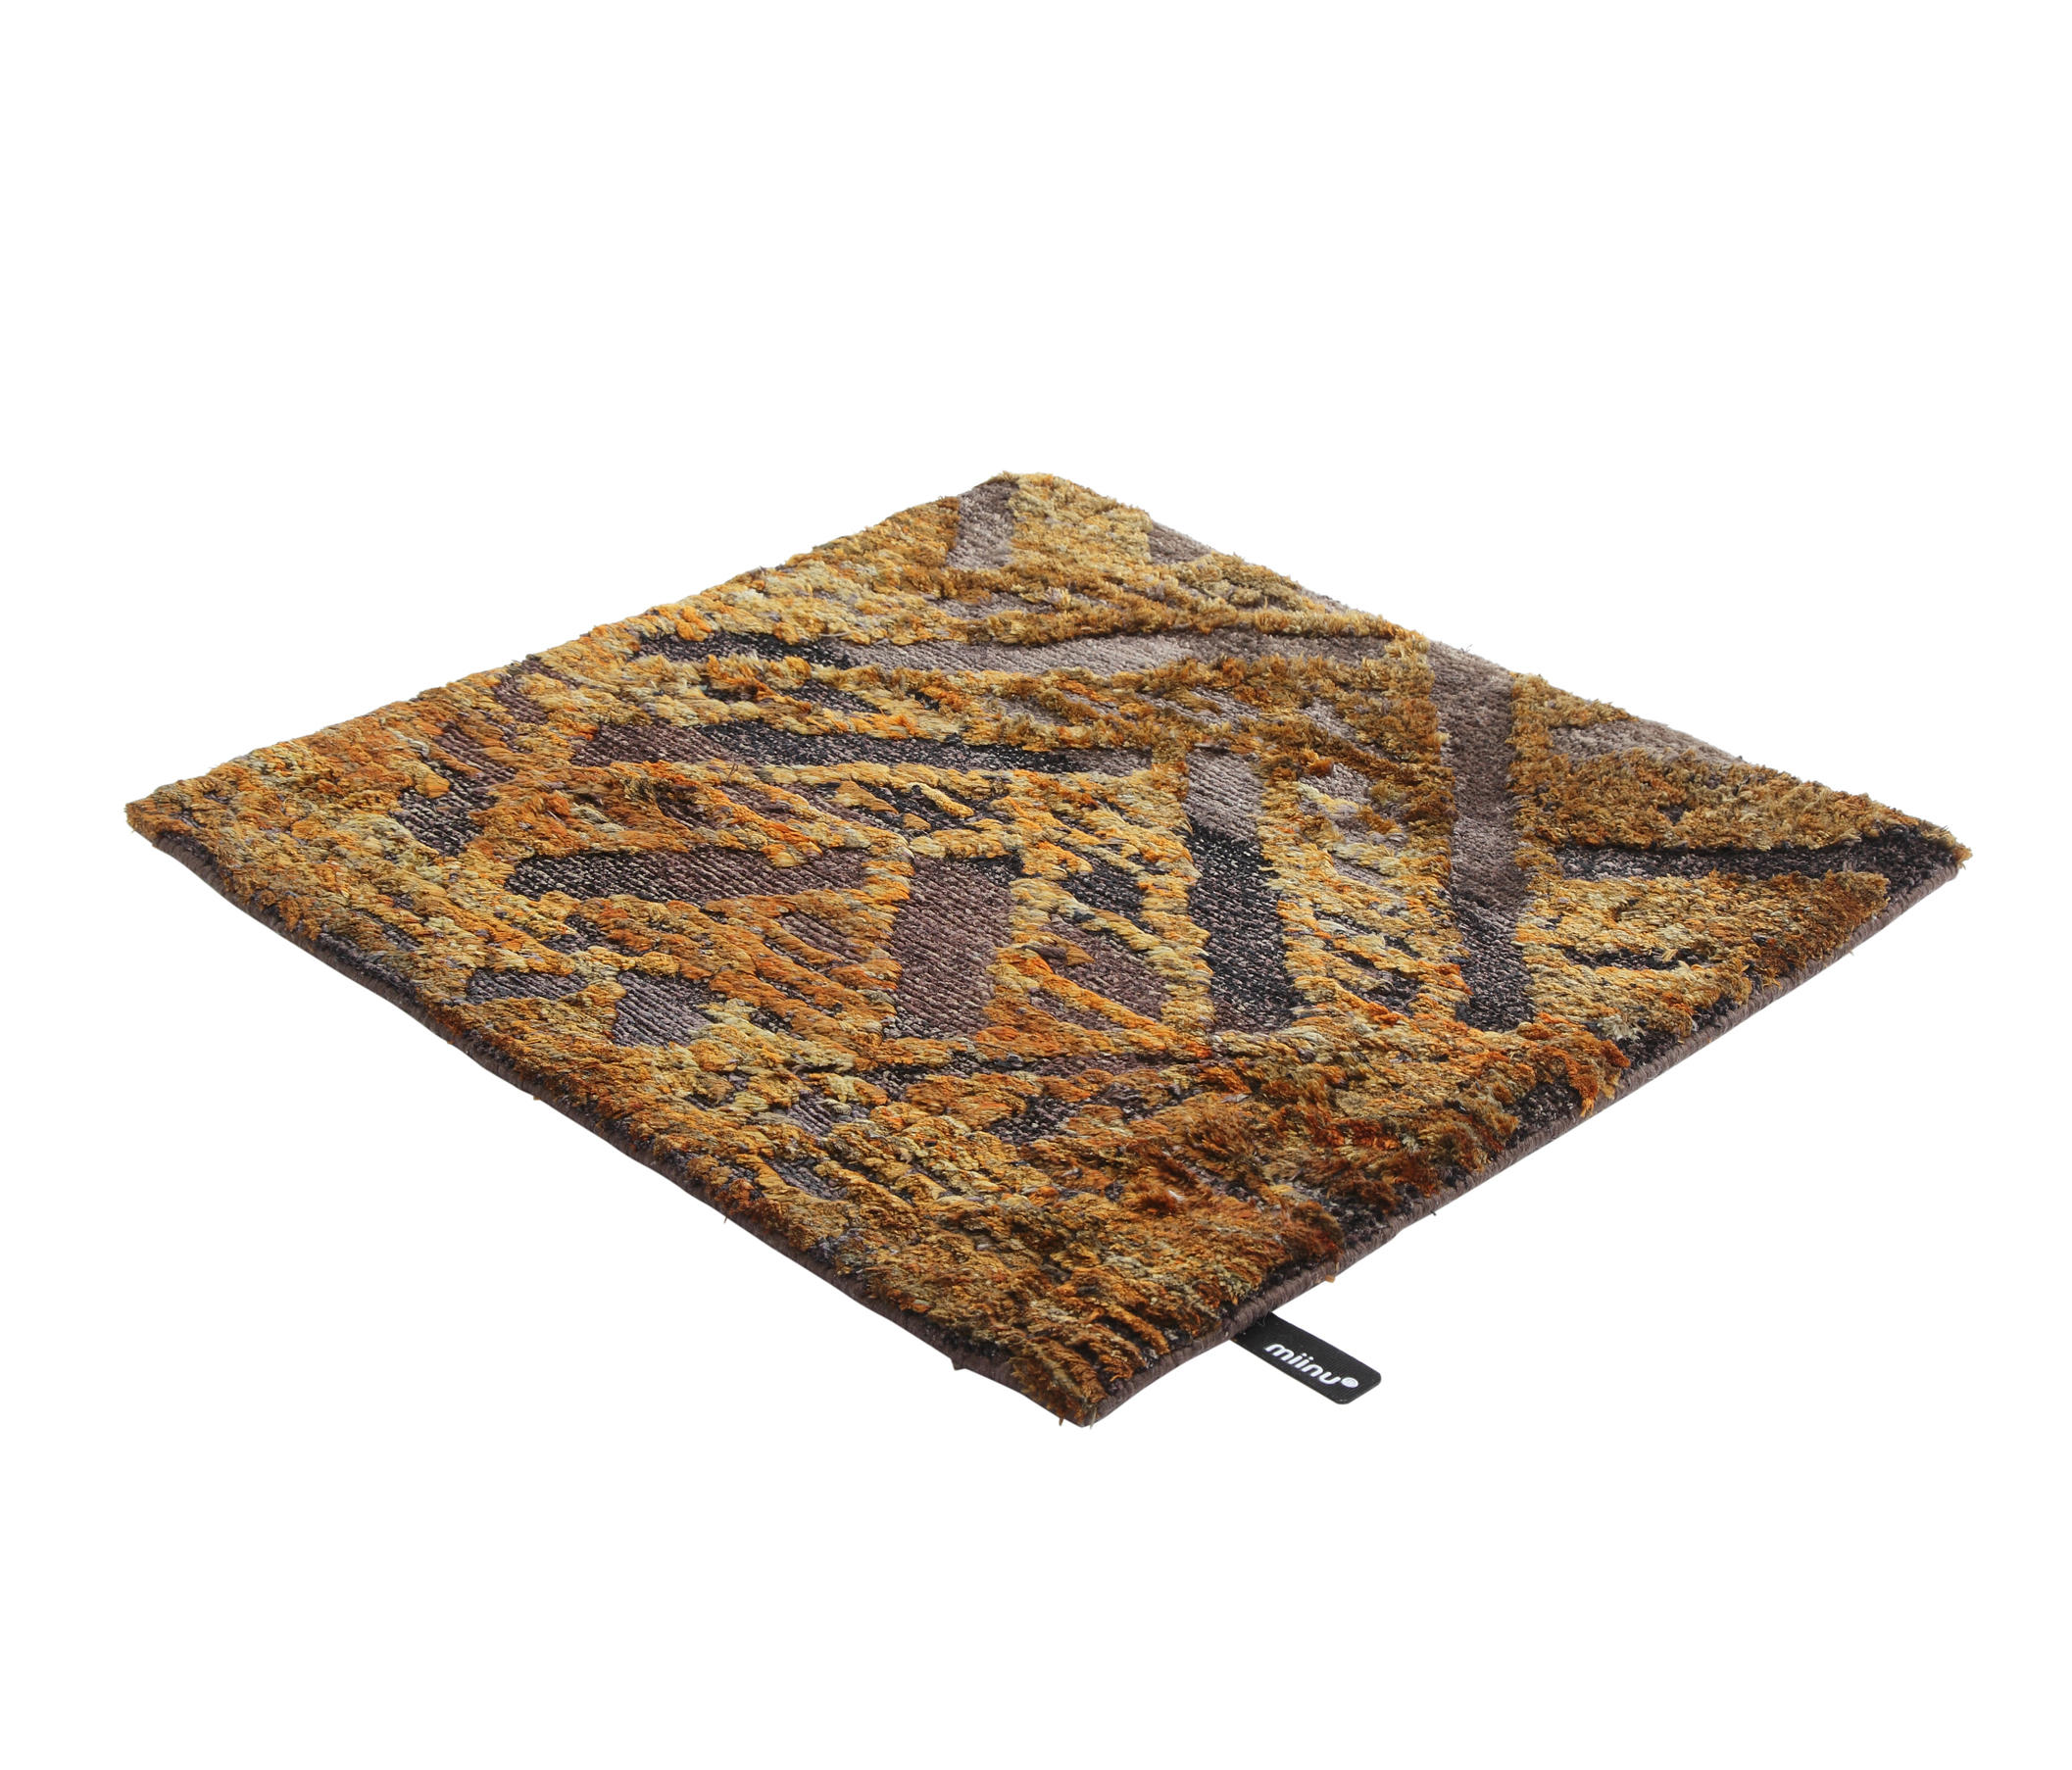 barouk artisans gold rugs designer rugs from miinu. Black Bedroom Furniture Sets. Home Design Ideas